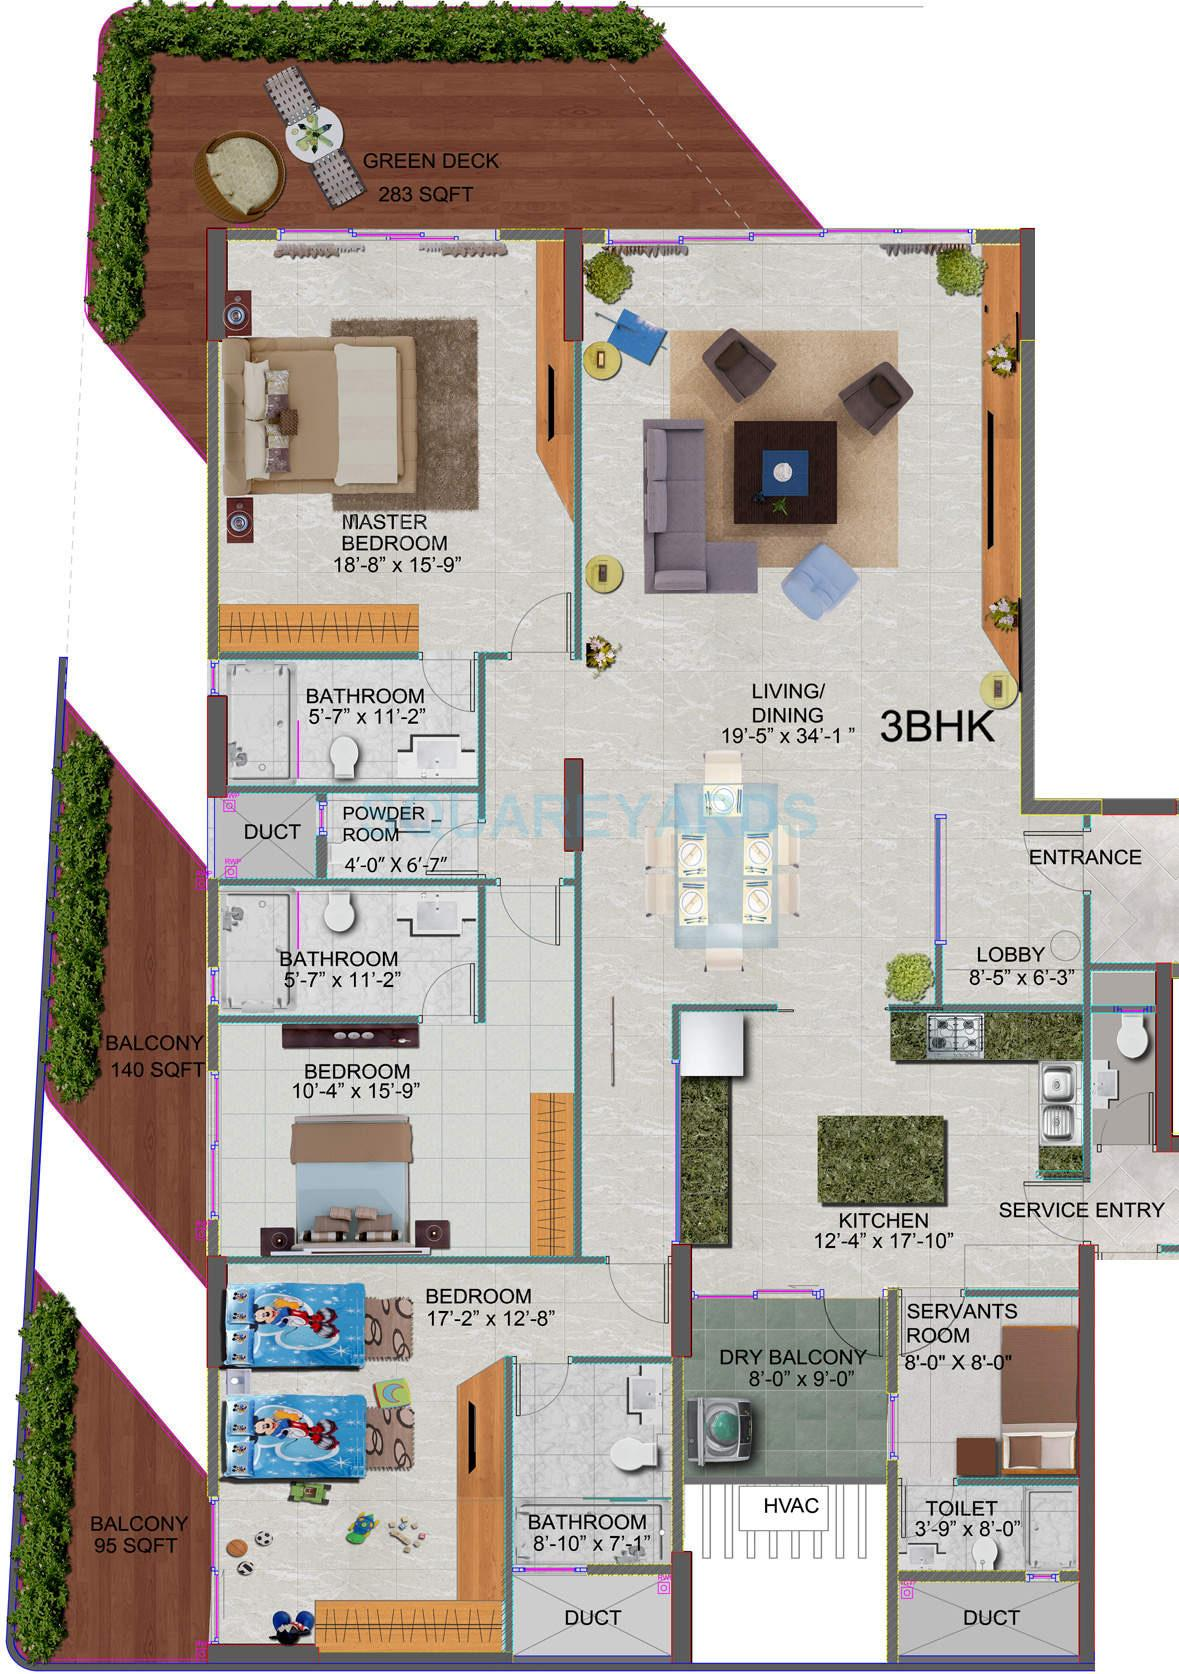 mahindra lifespaces l artista apartment 3 bhk 2629sqft 20201220121217